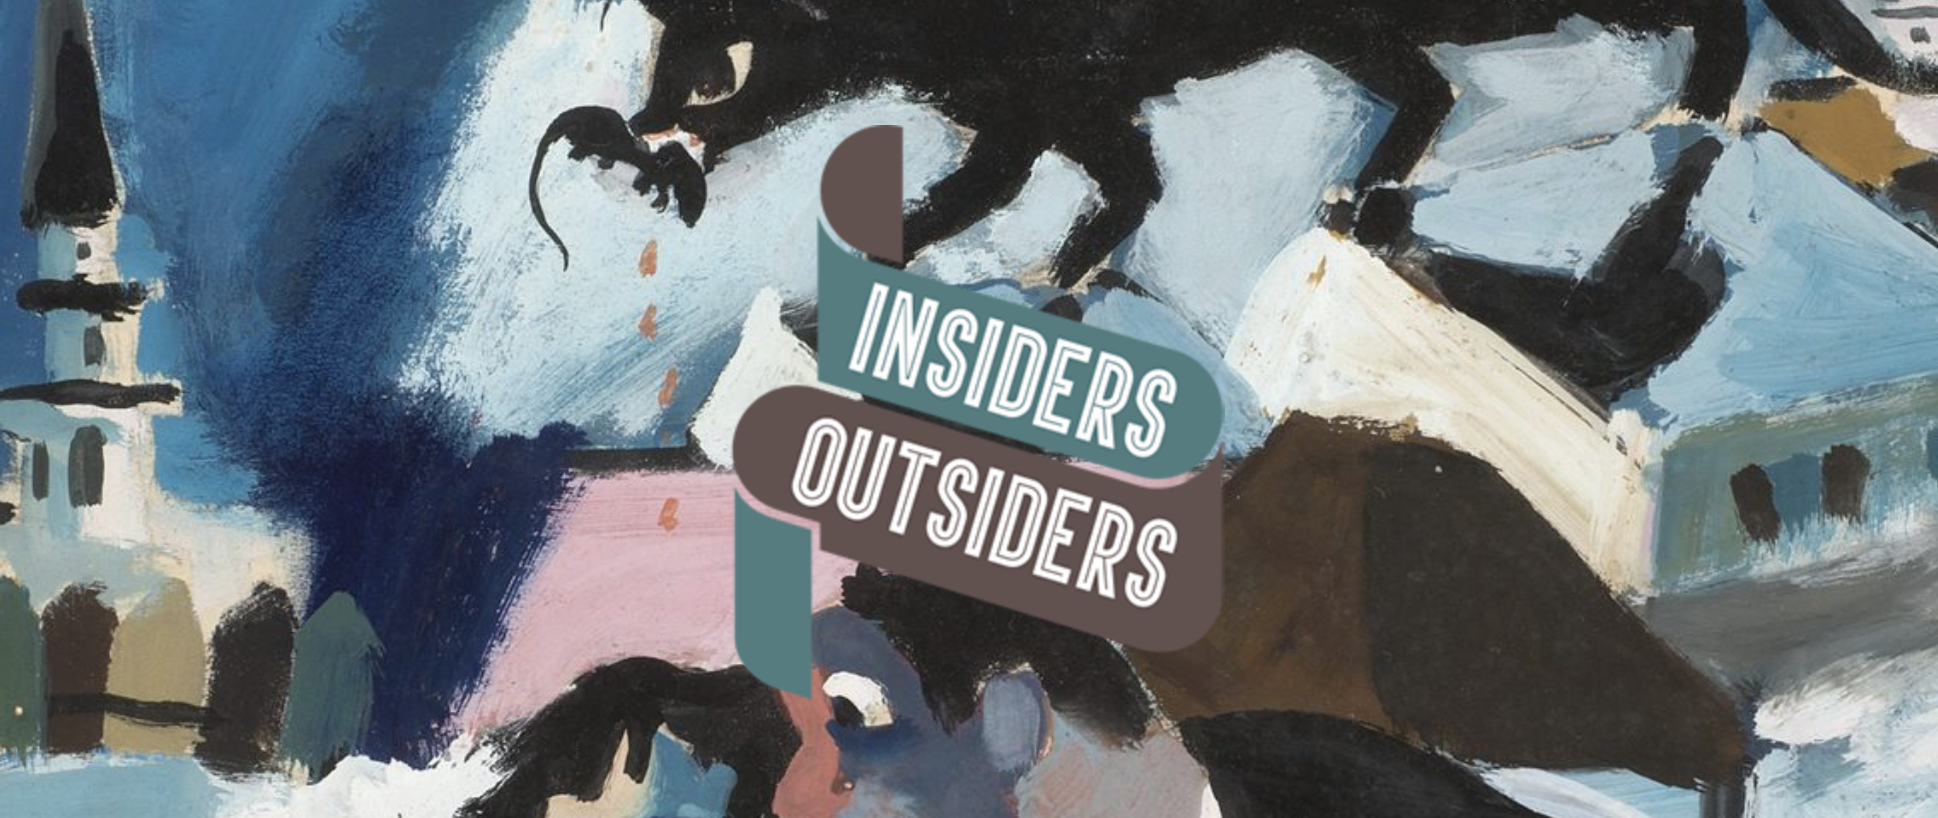 Insiders/Outsiders Festival